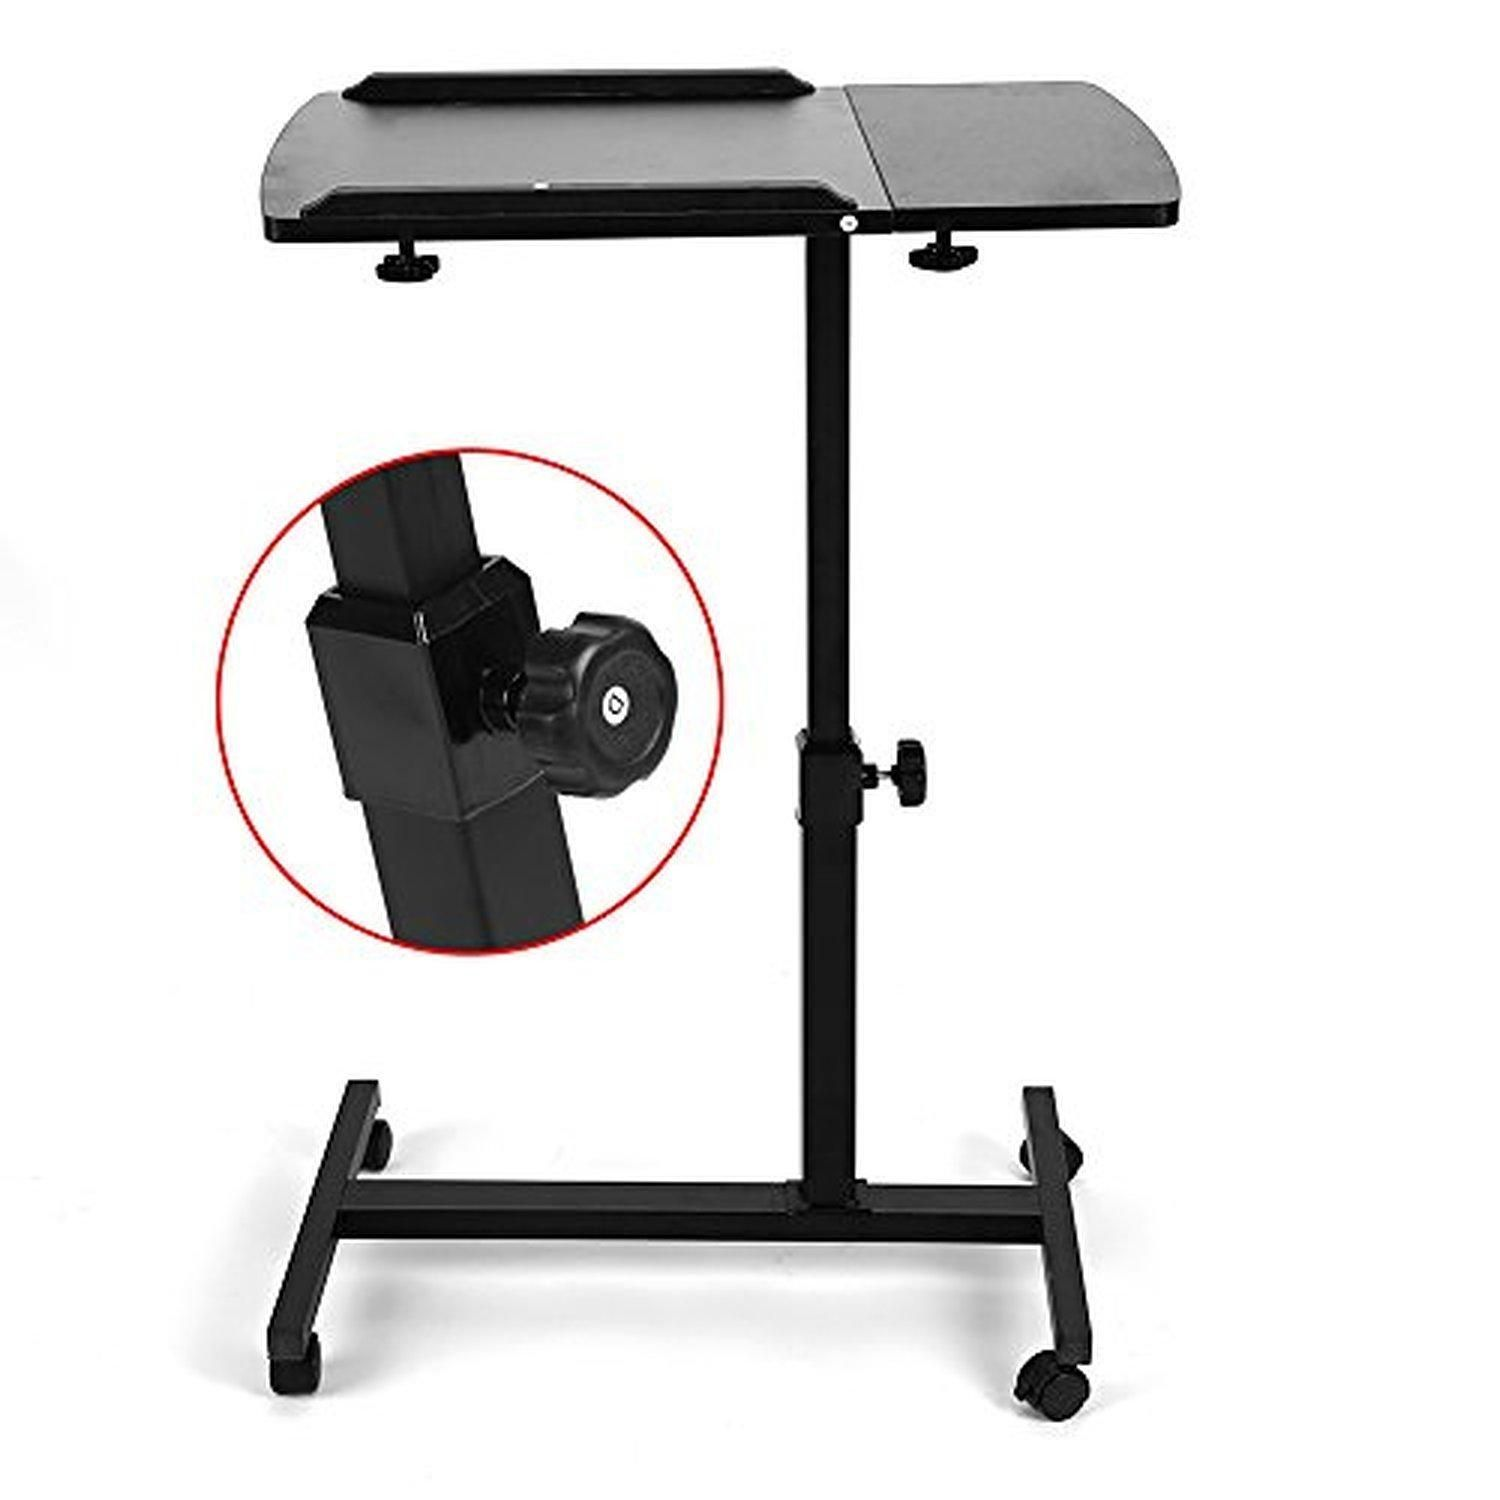 bed stand desk pillow exceptional portable genius over top for table chair laptop couch